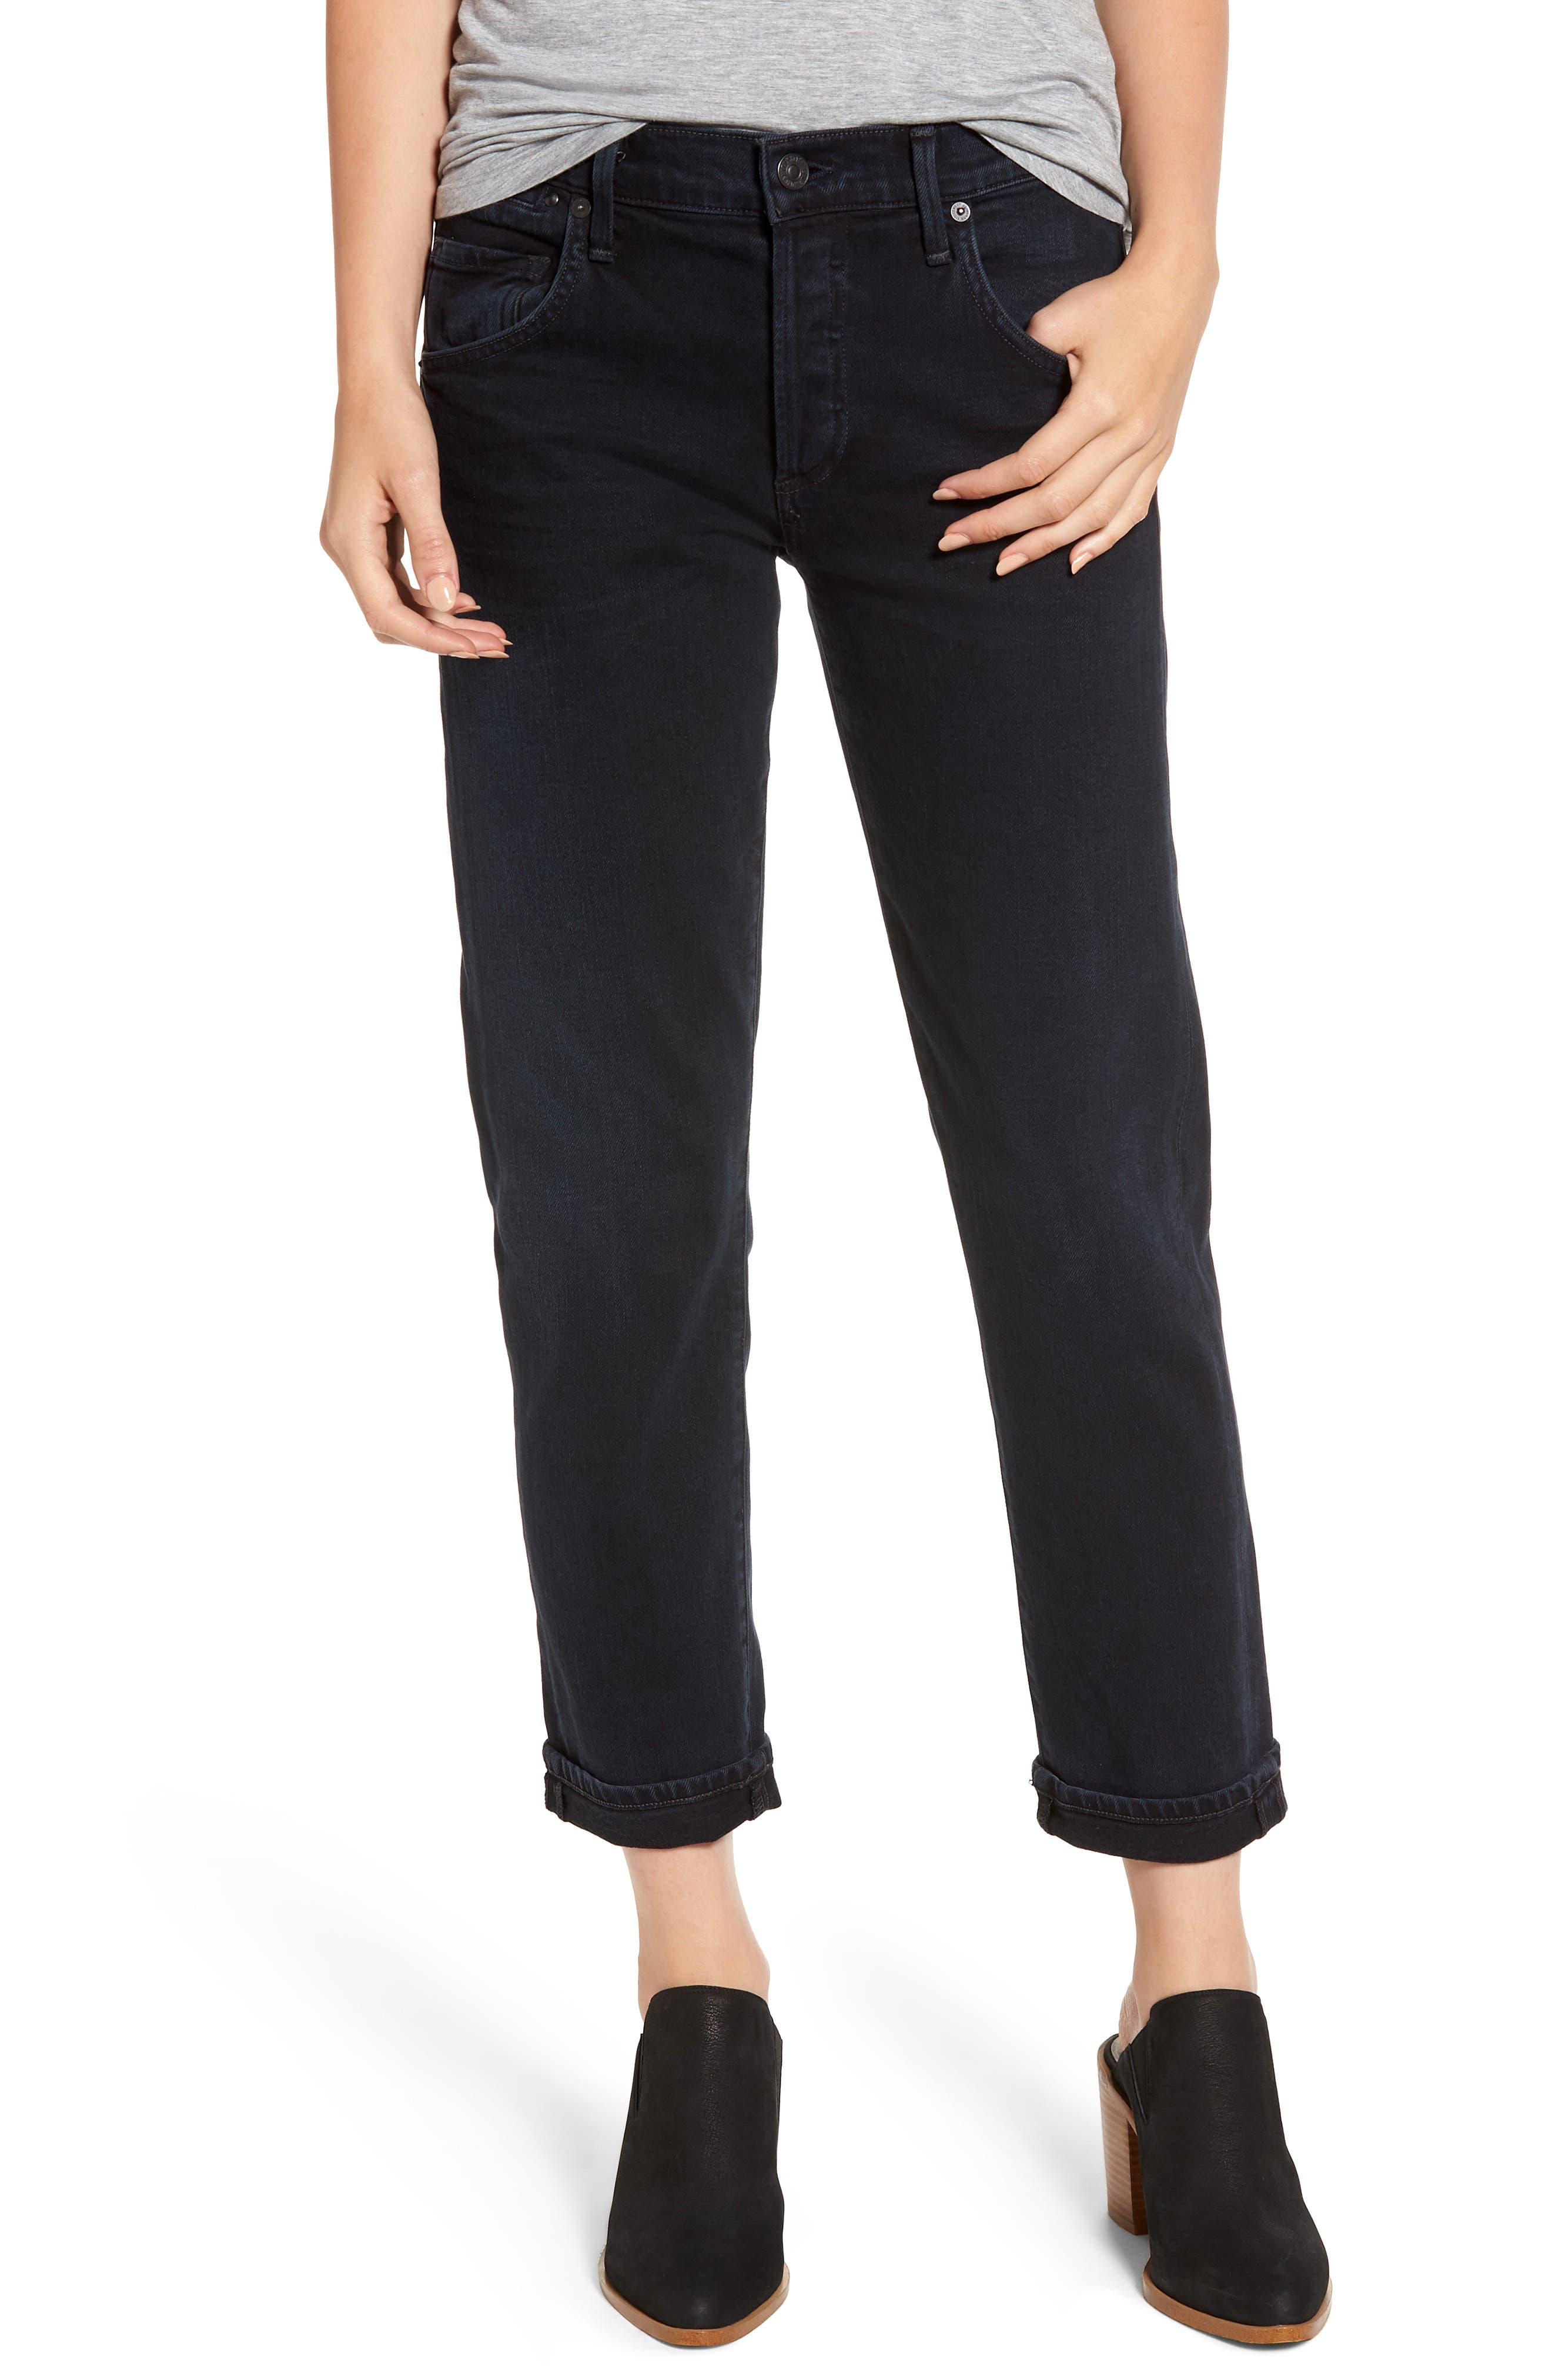 CITIZENS OF HUMANITY Emerson Slim Boyfriend Jeans, Main, color, NIGHT SHADE